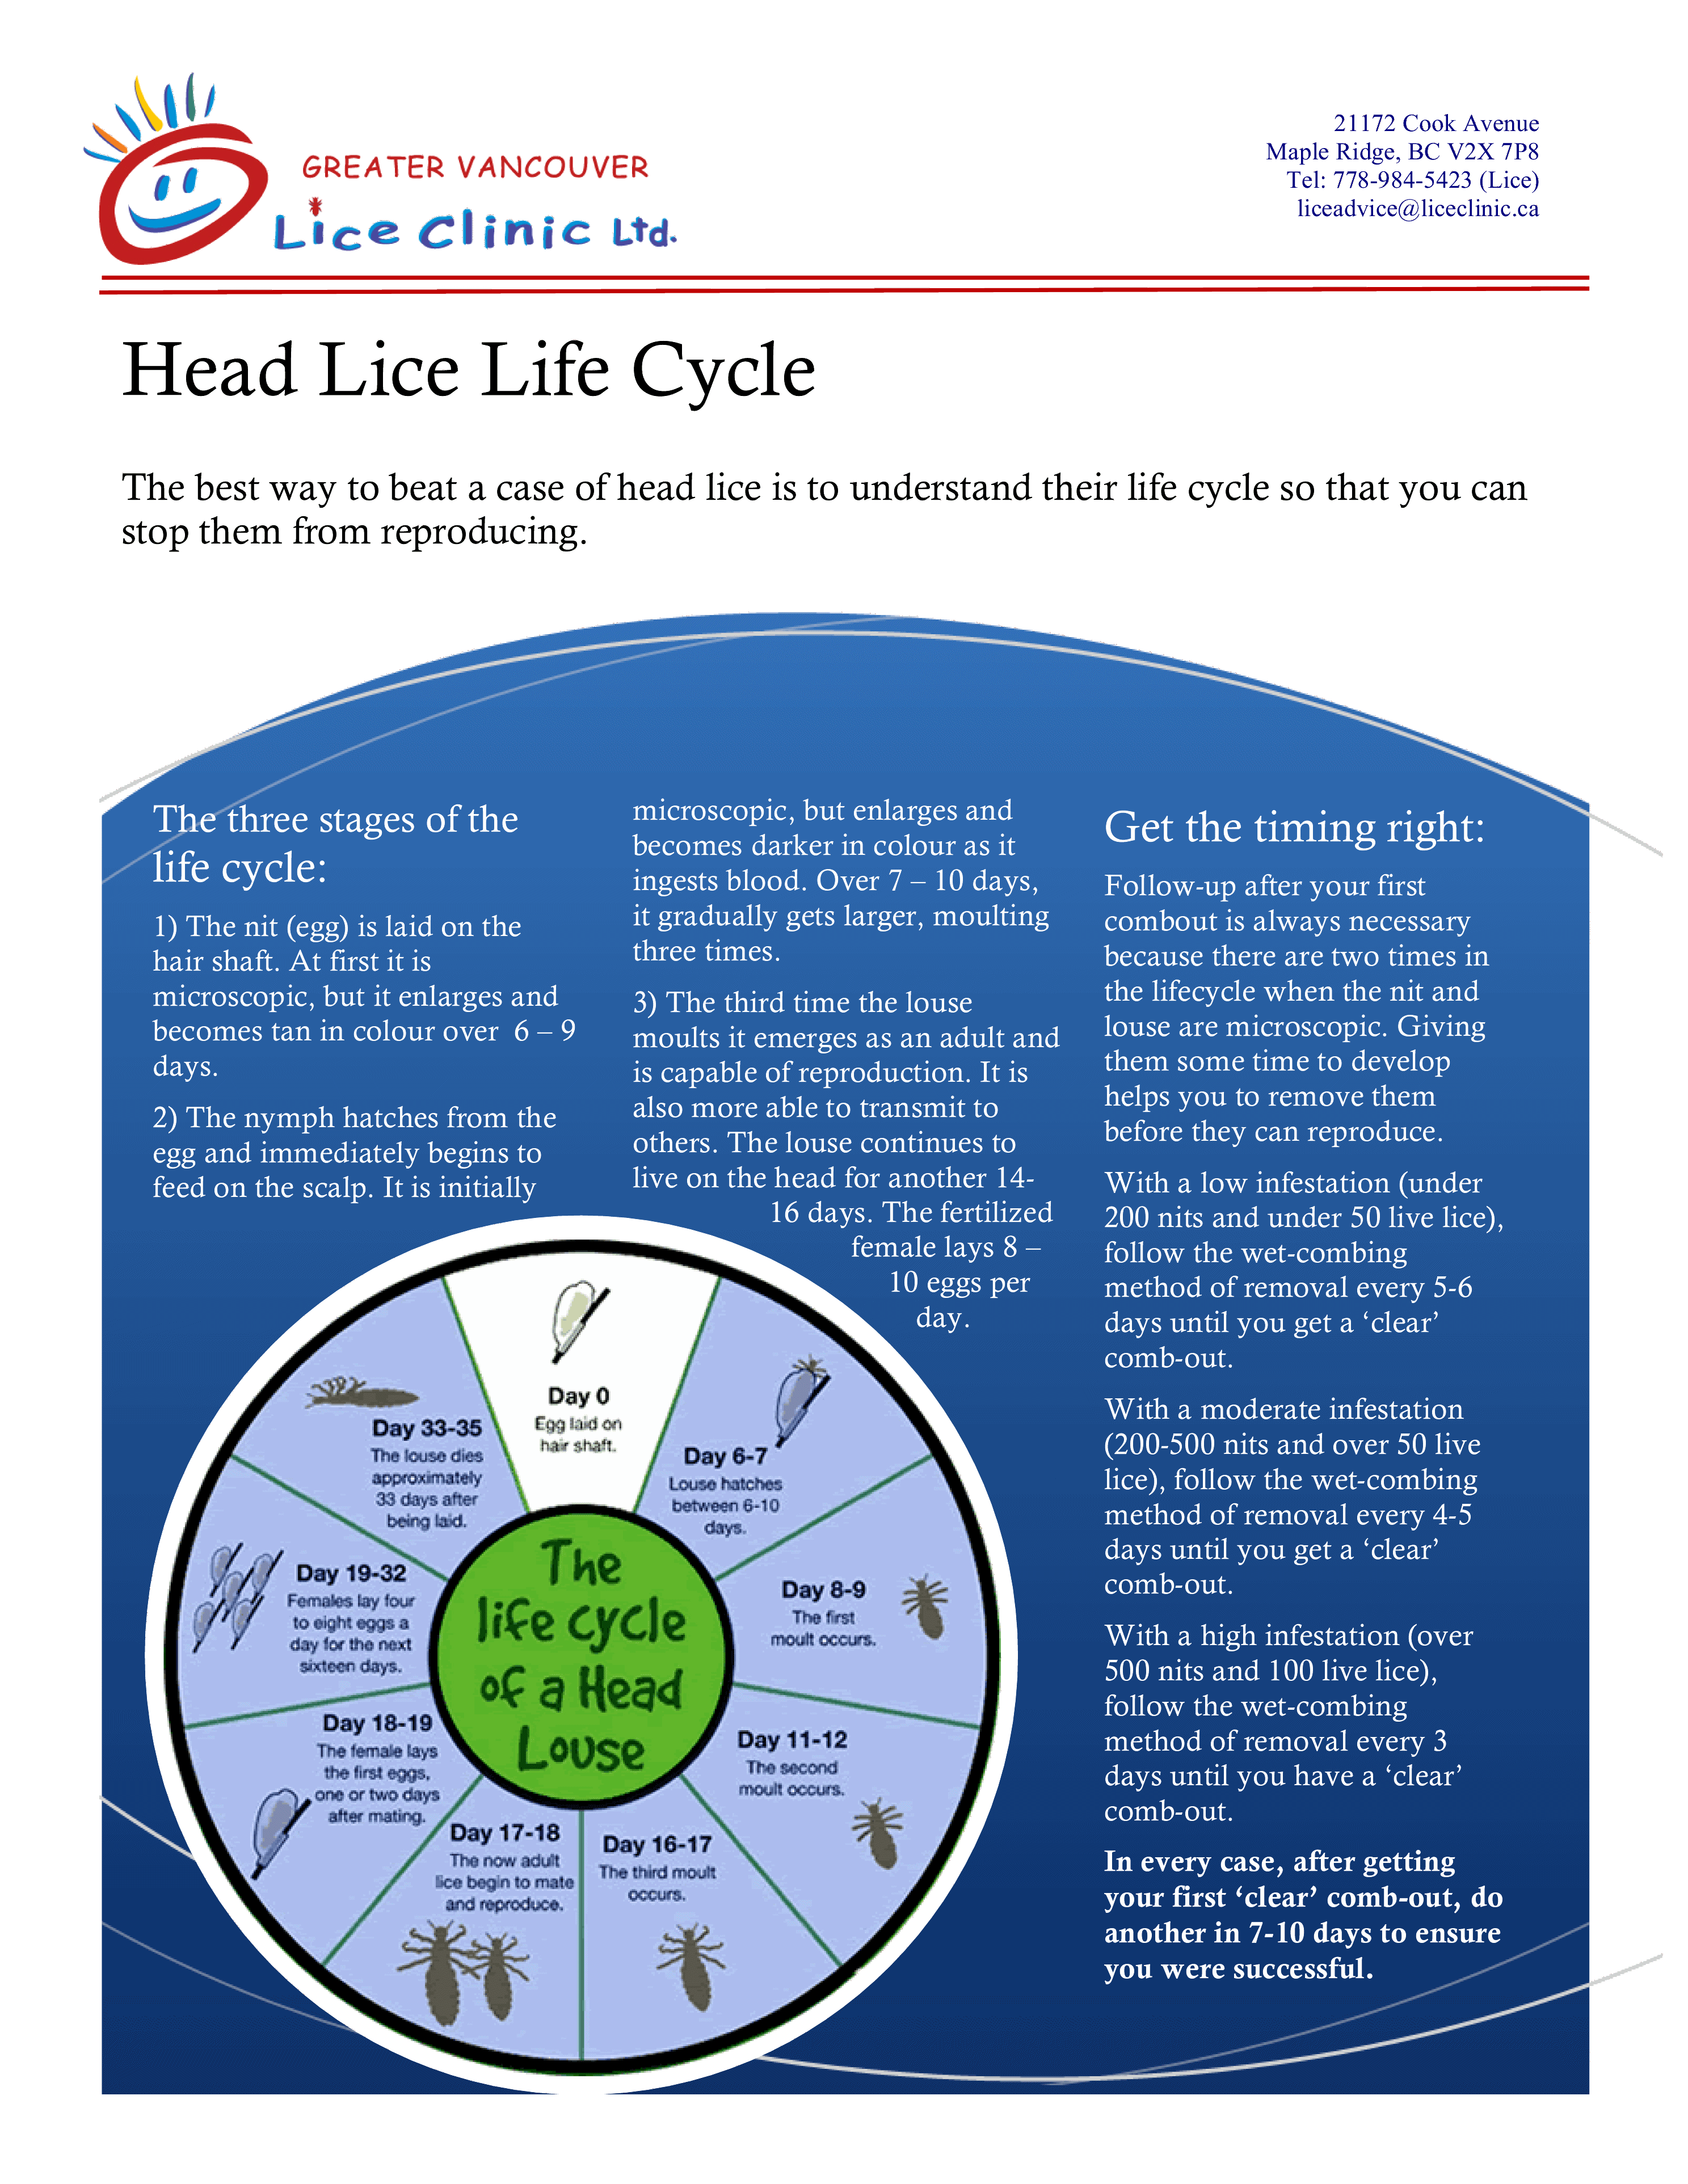 life cycle of lice